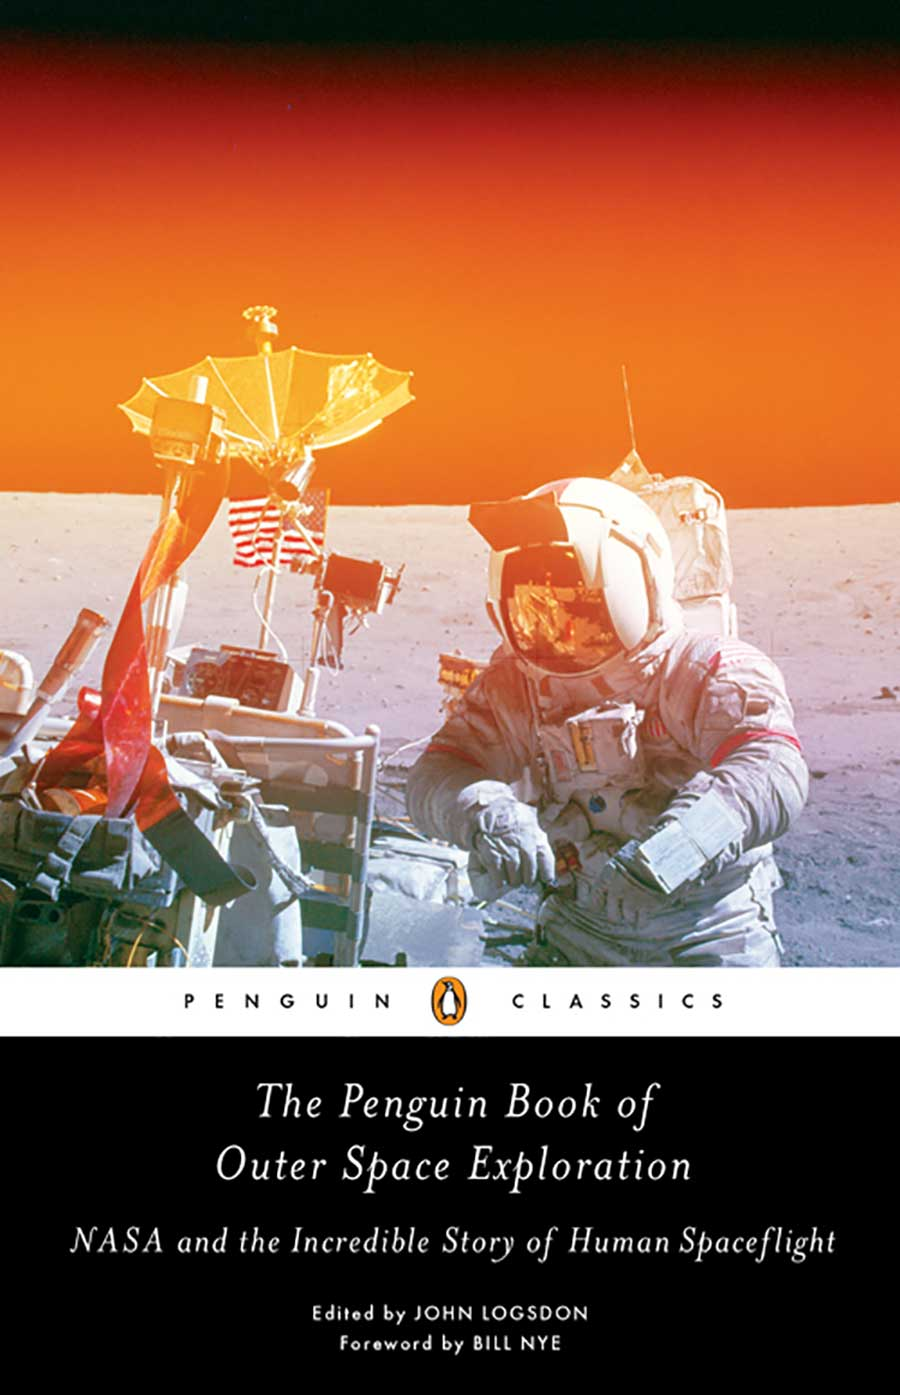 """The Penguin Book of Outer Space Exploration (2018) - """"Professor Logsdon is uniquely qualified for the task – to reveal the cultural, political, and scientific correspondence that birthed and sustains our era of space exploration.""""– Neil deGrasse Tyson, American Natural History Museum""""Brimming with fascinating behind-the-scenes details from the birth of the Space Age through the race to the Moon and beyond, this remarkable collection from one of America's preeminent space historians is a treasure.""""– Andrew Chaikin, author, A Man on the Moon""""A thought-provoking documentary journey through the maze of space history. There is no wiser or more experienced navigator through the twists and turns and ups and downs than John Logsdon.""""– James Hansen, author, First Man"""